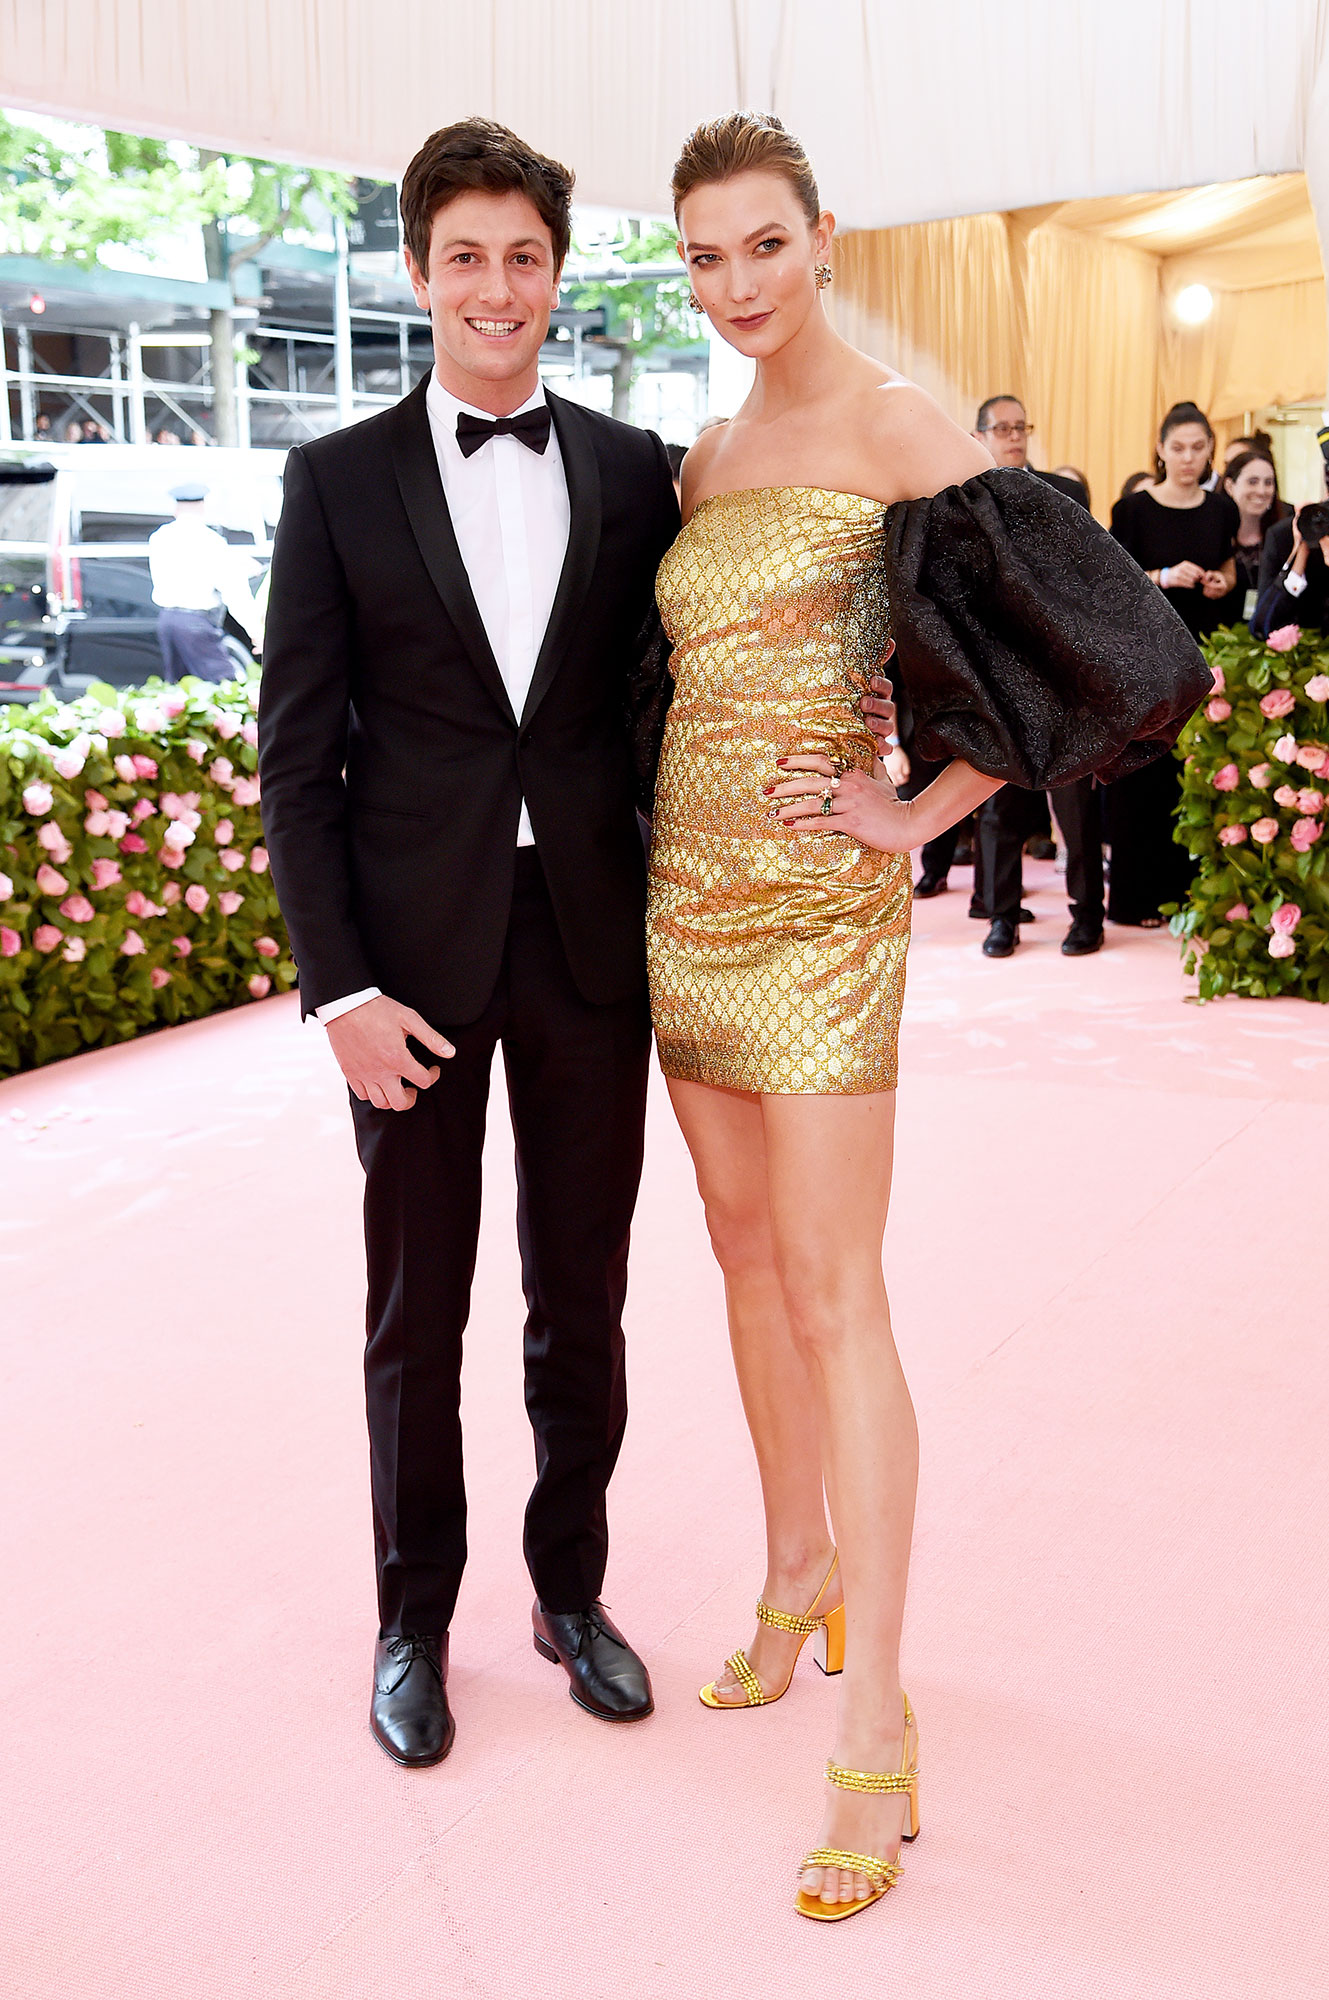 Joshua Kushner and Karlie Kloss met gala 2019 couples - The Project Runway host showed some leg in a Gucci x Dapper Dan gold and black mini, which coordinated with her husband's black tux.